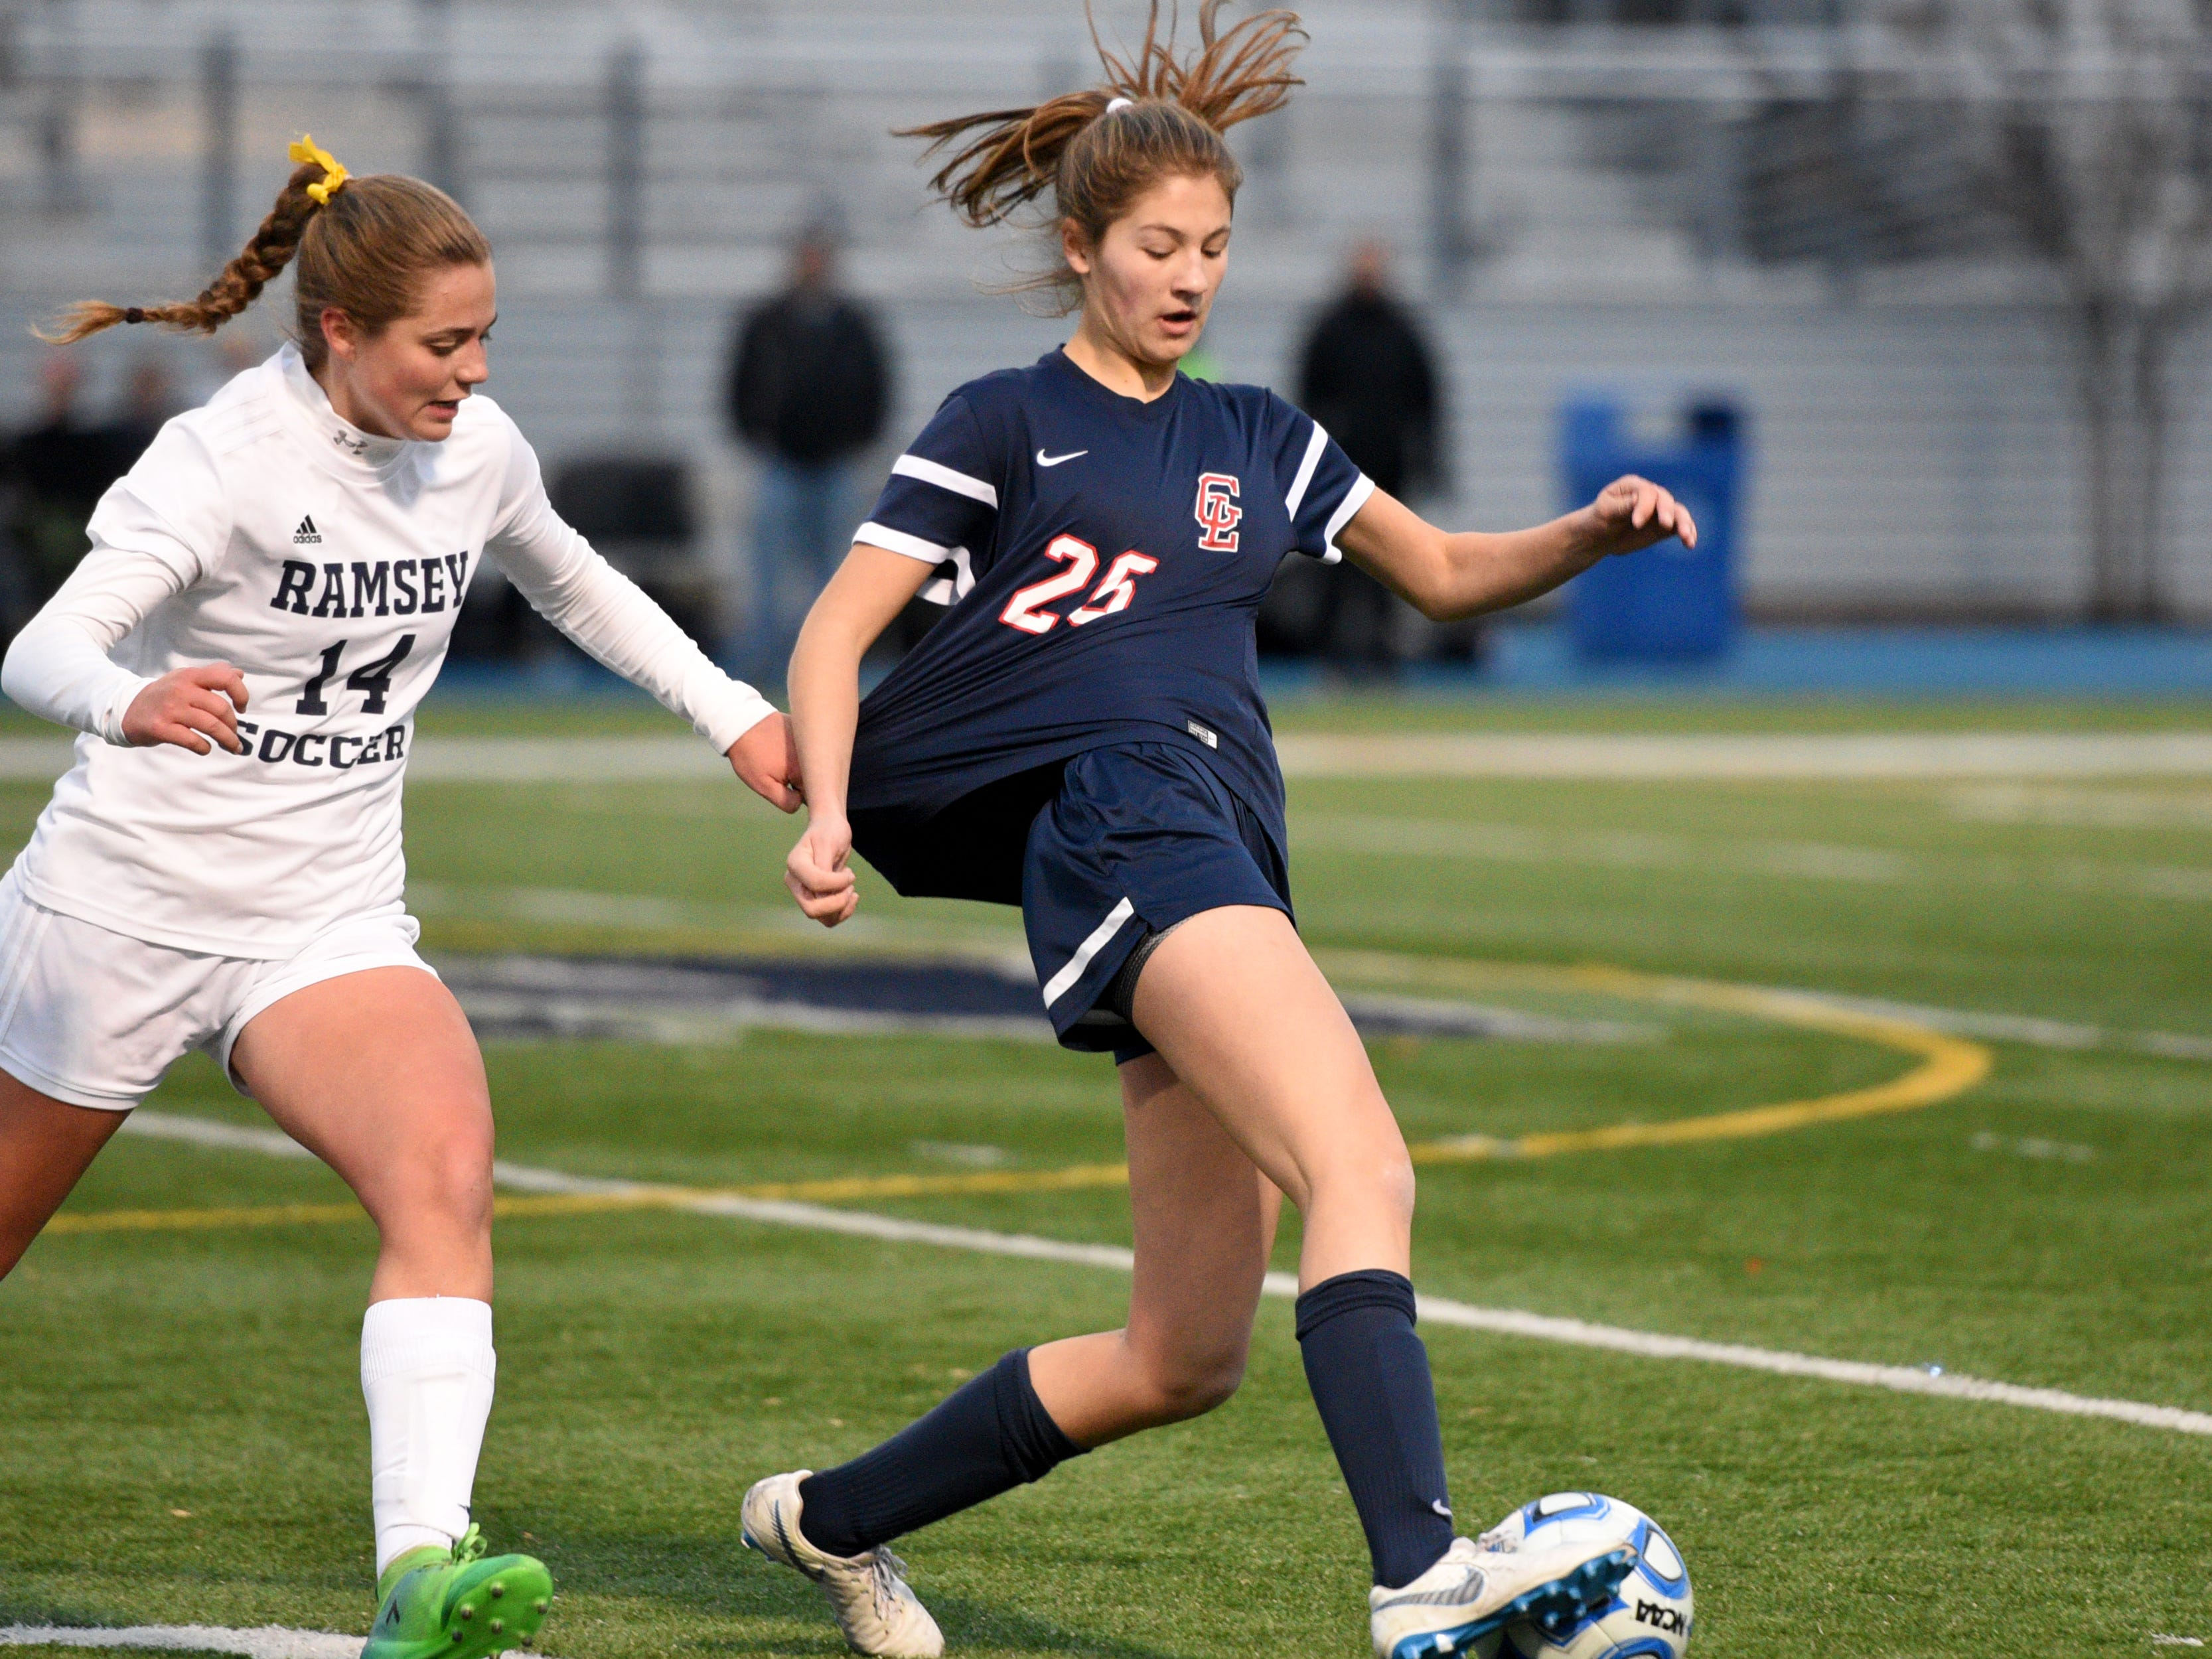 Ramsey's Melanie Mack (14) and Governor Livingston's Lauren Paprocki battle for the ball during the Group II final on Sunday, Nov. 18, 2018 at Kean University.